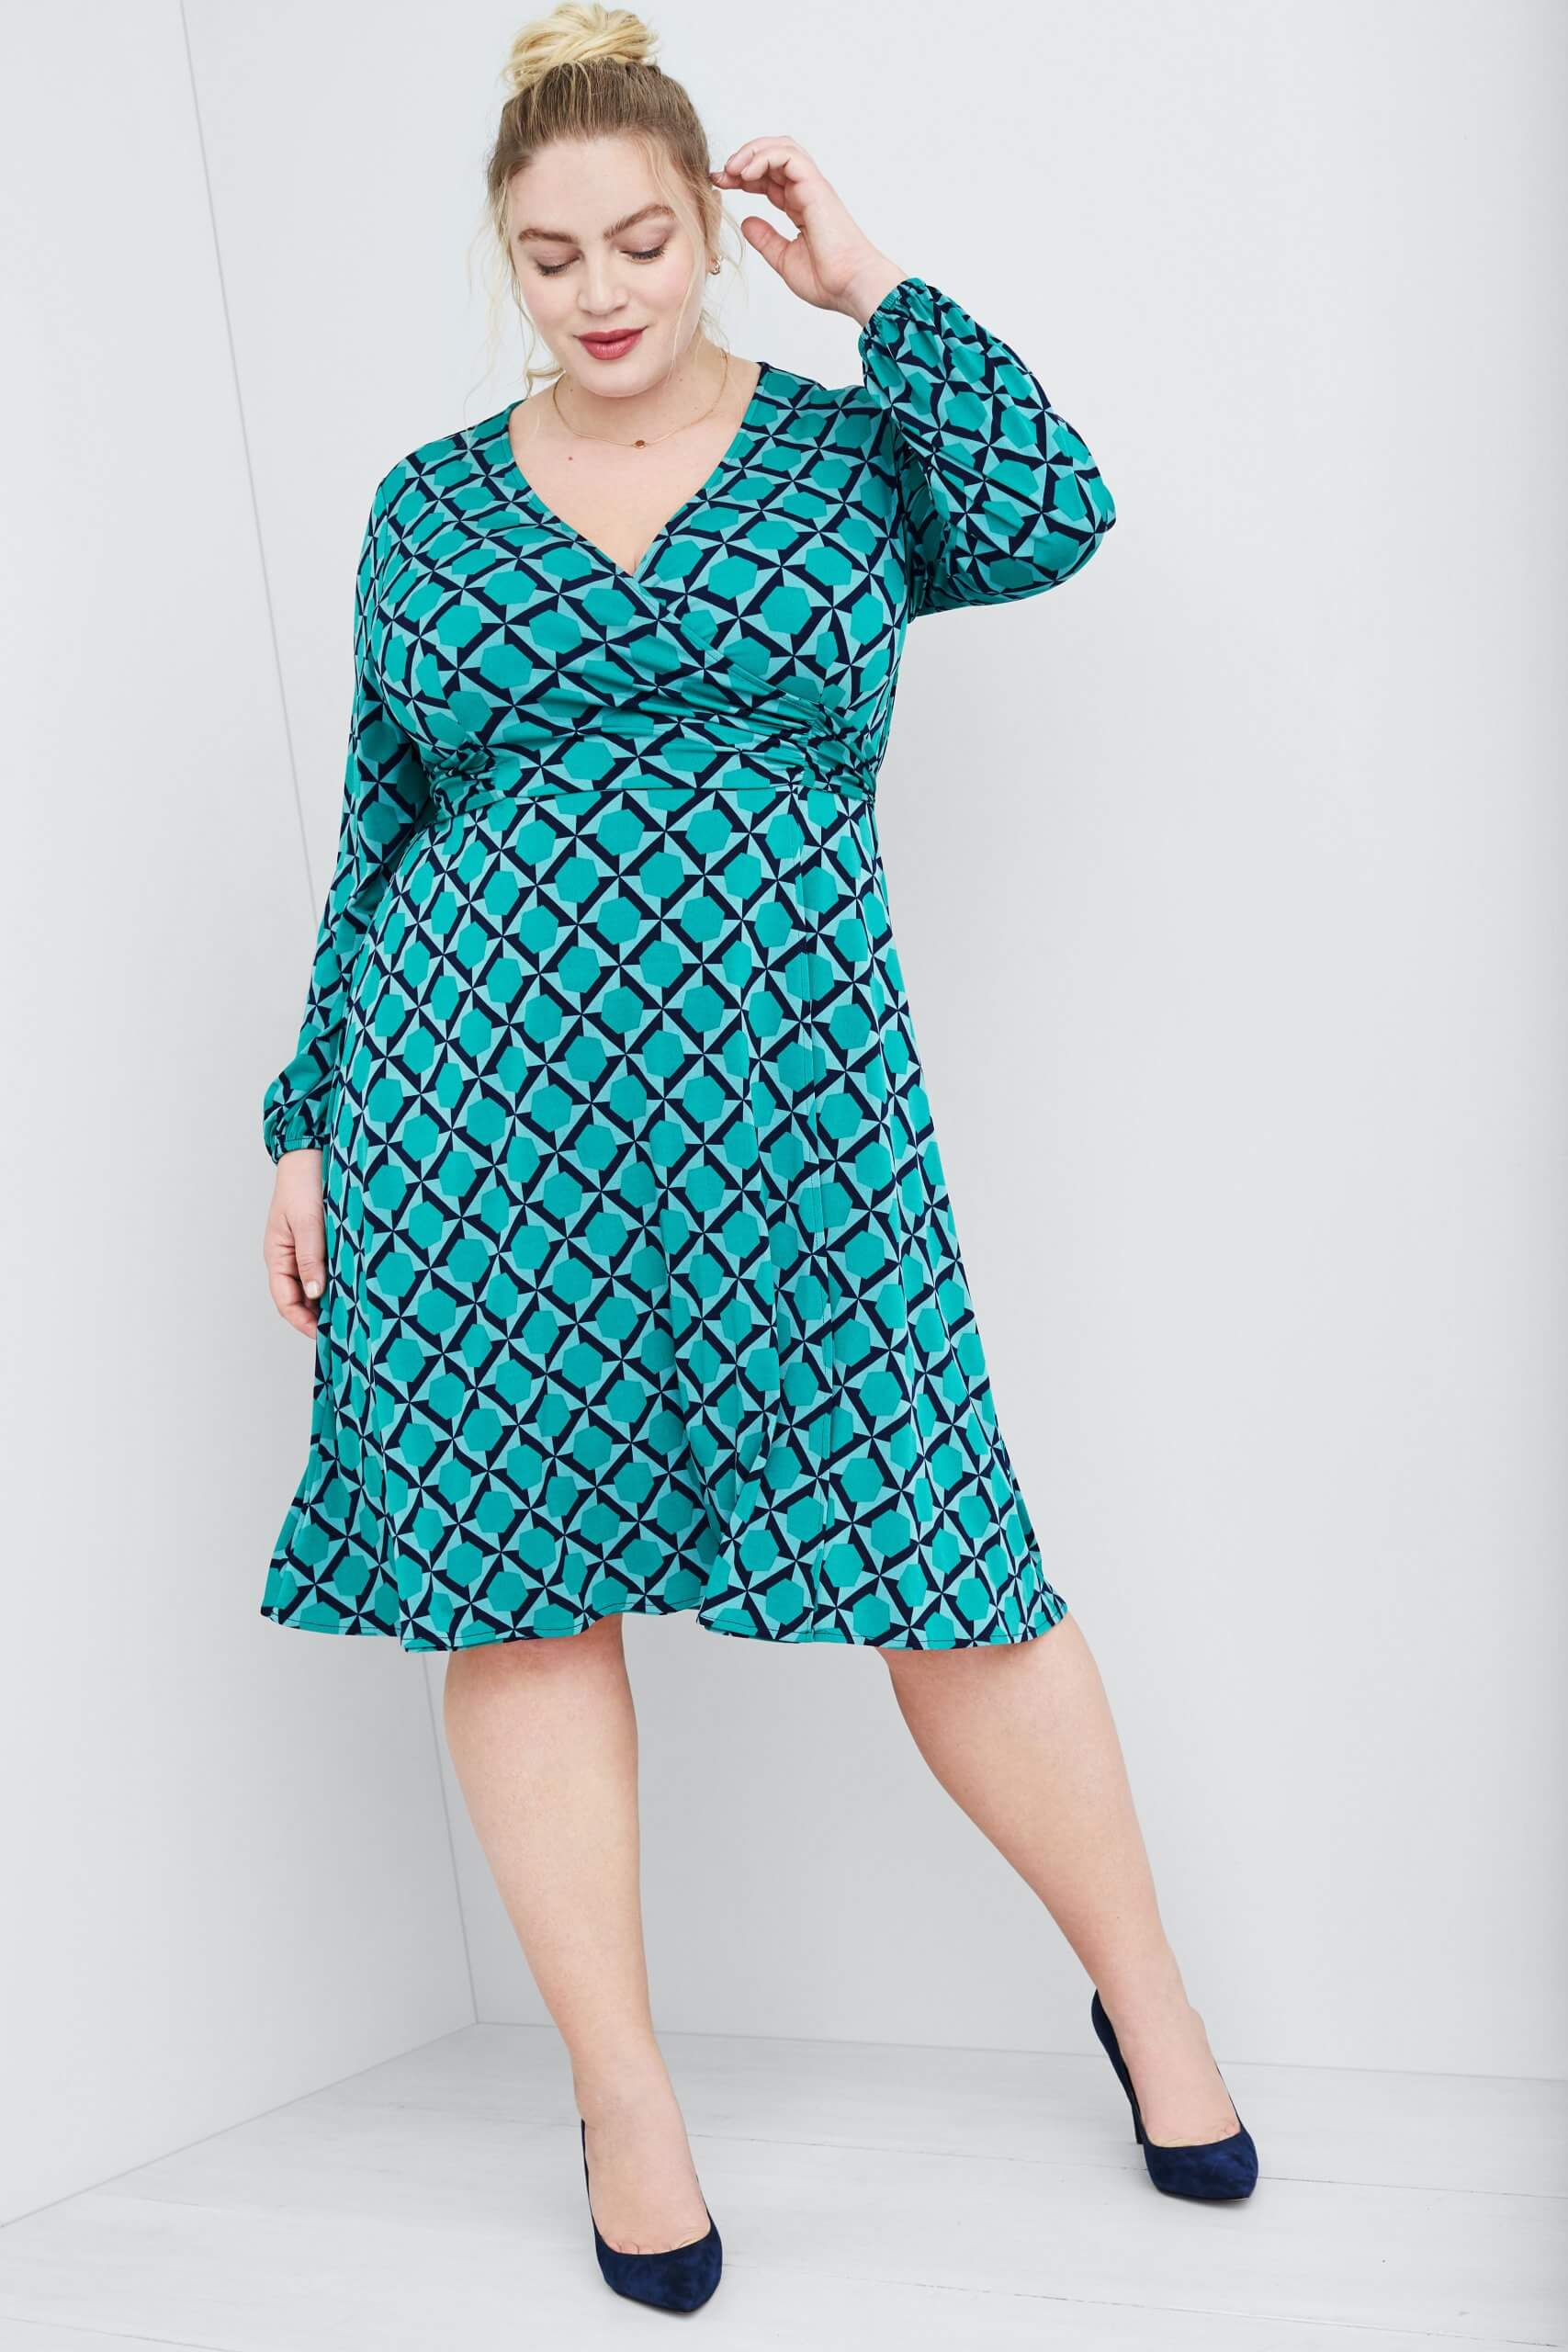 Stitch Fix Women's model wearing teal green abstract print wrap dress and navy heels.